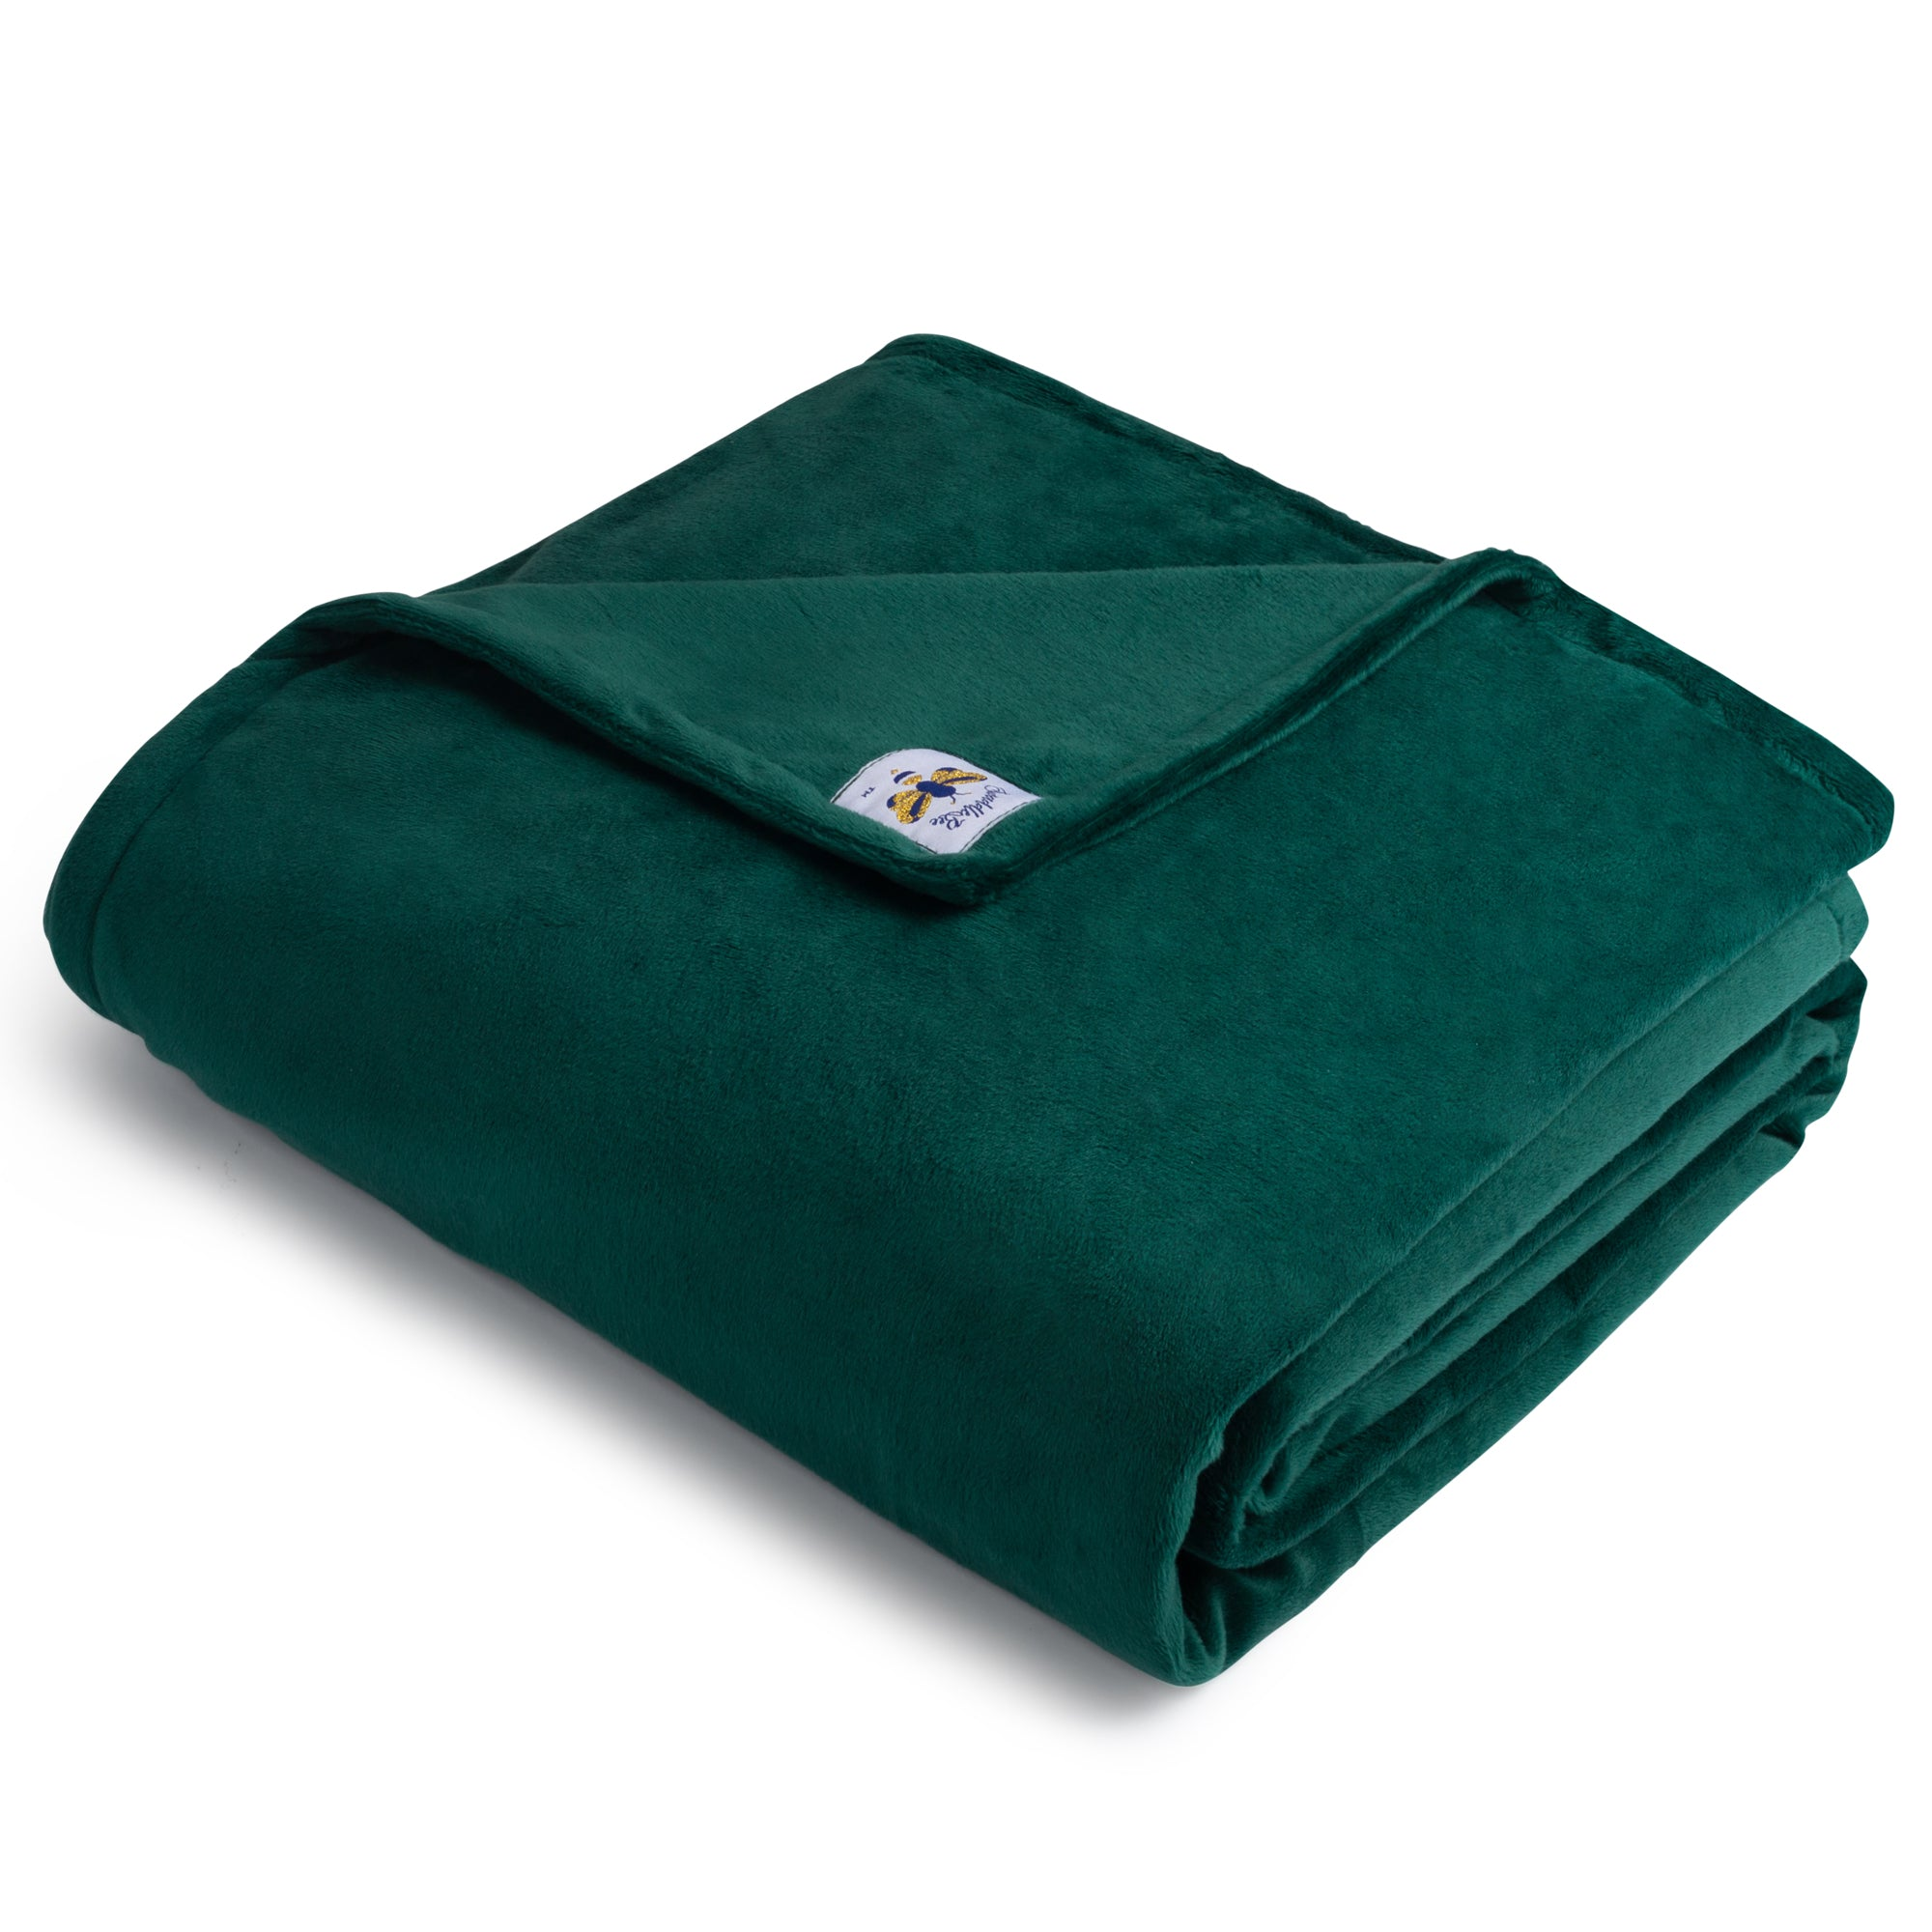 BiggerBee Minky Throw Blanket Forest Green *** LOW STOCK***